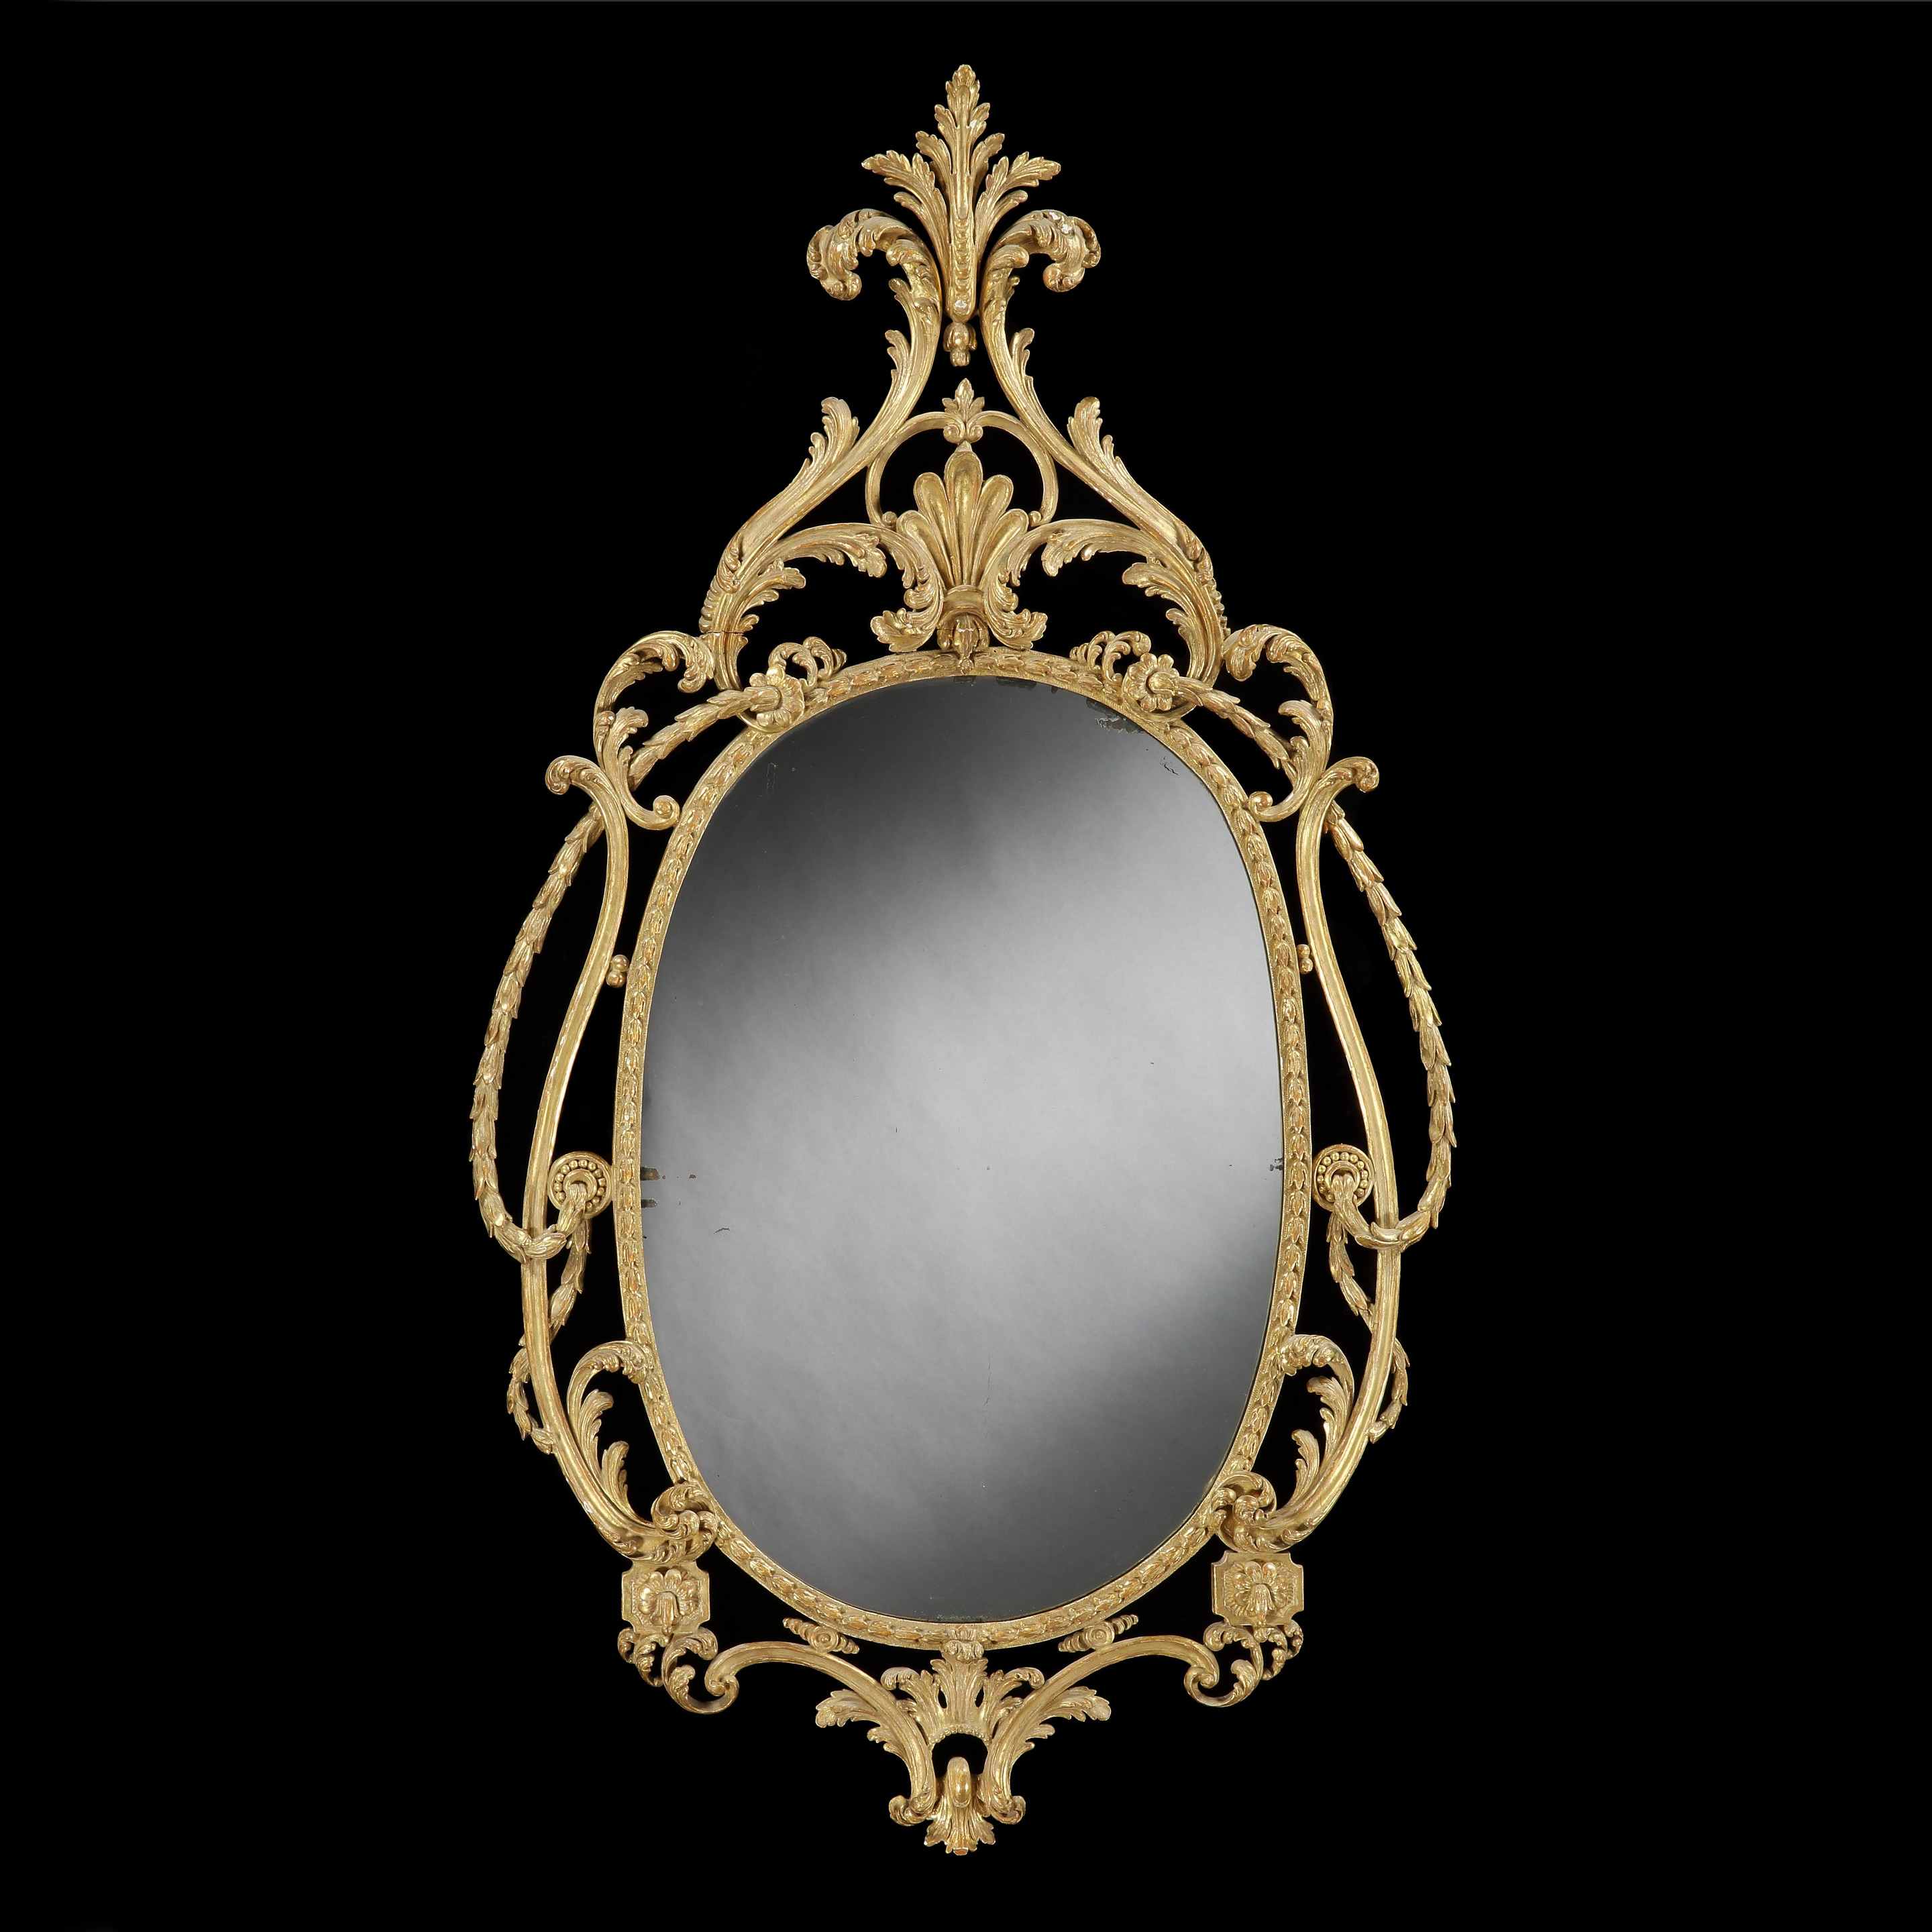 An Important George Iii Rococo Mirror 1770 England From Tarquin Inside Rococo Mirror (Image 5 of 15)